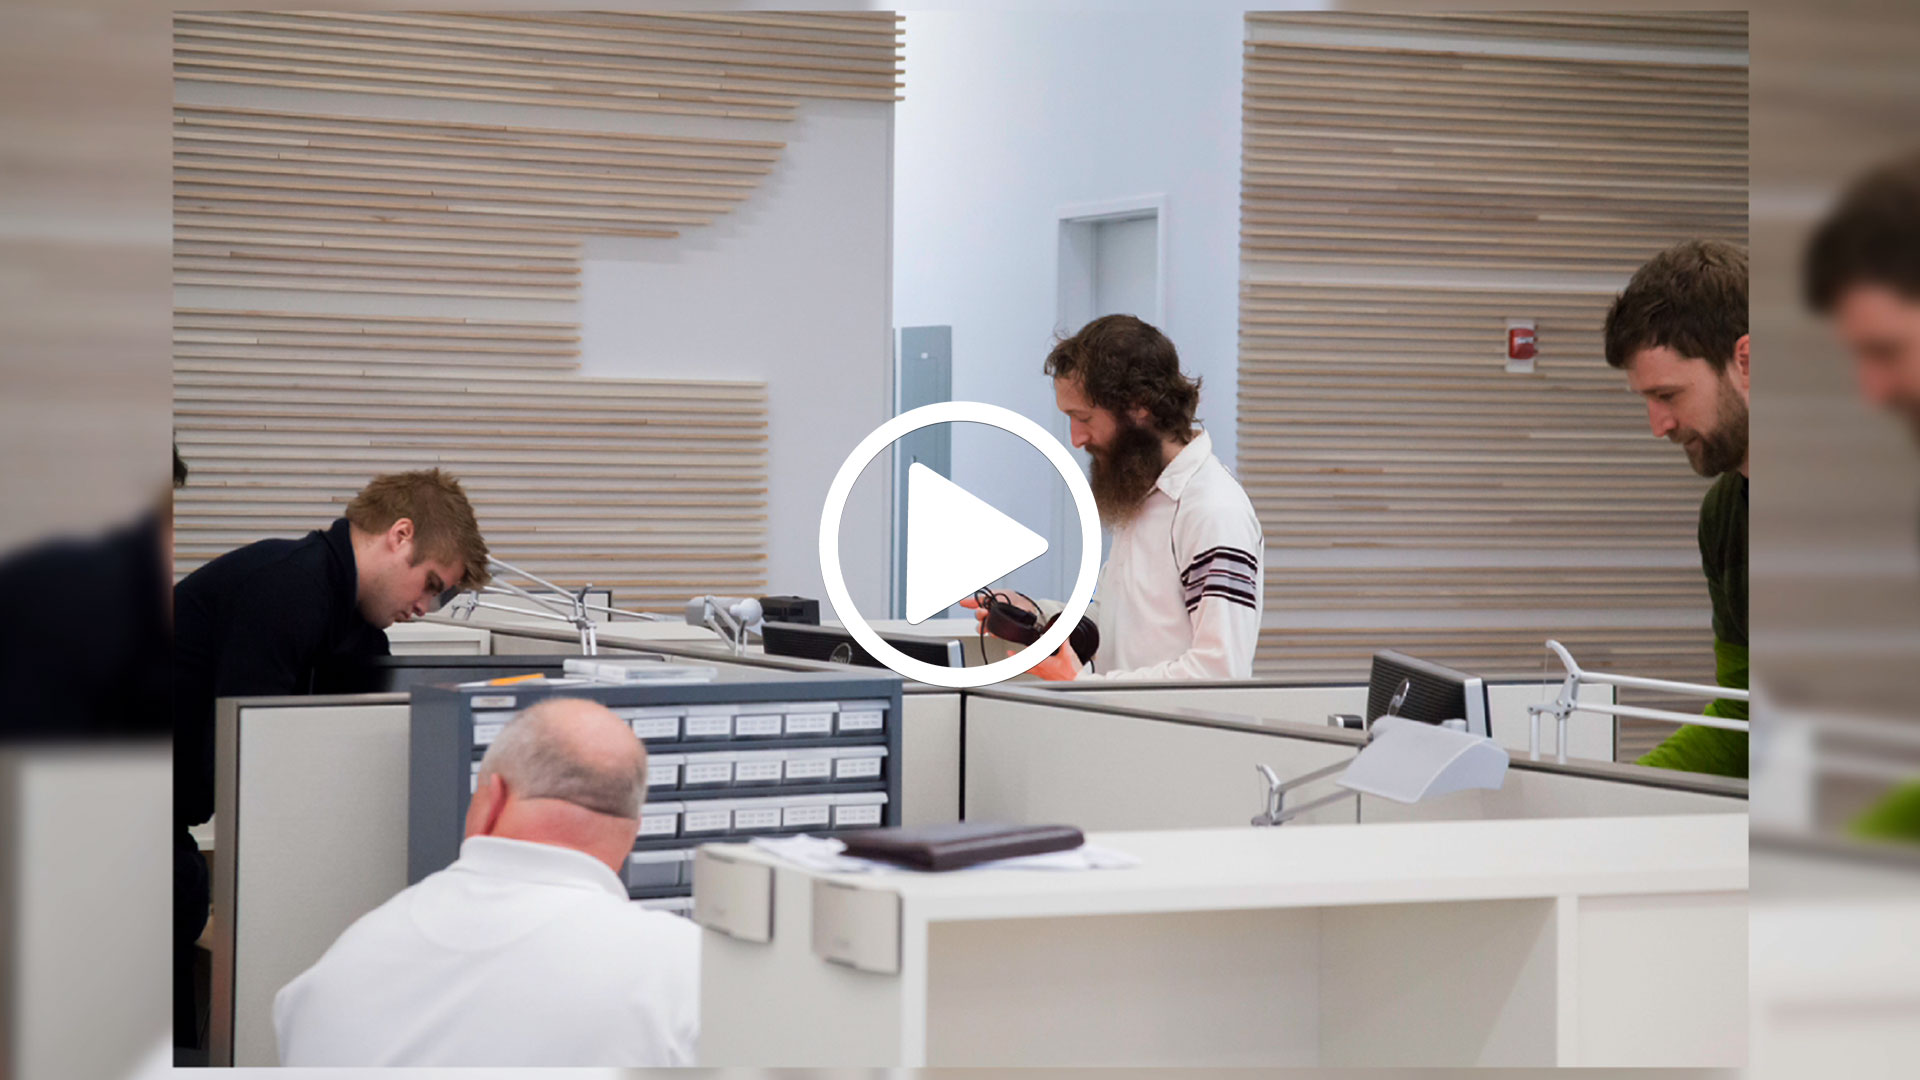 Watch our careers video for available job opening Newell Brands is Searching for an Associate, Merchandising in Hoboken, NJ